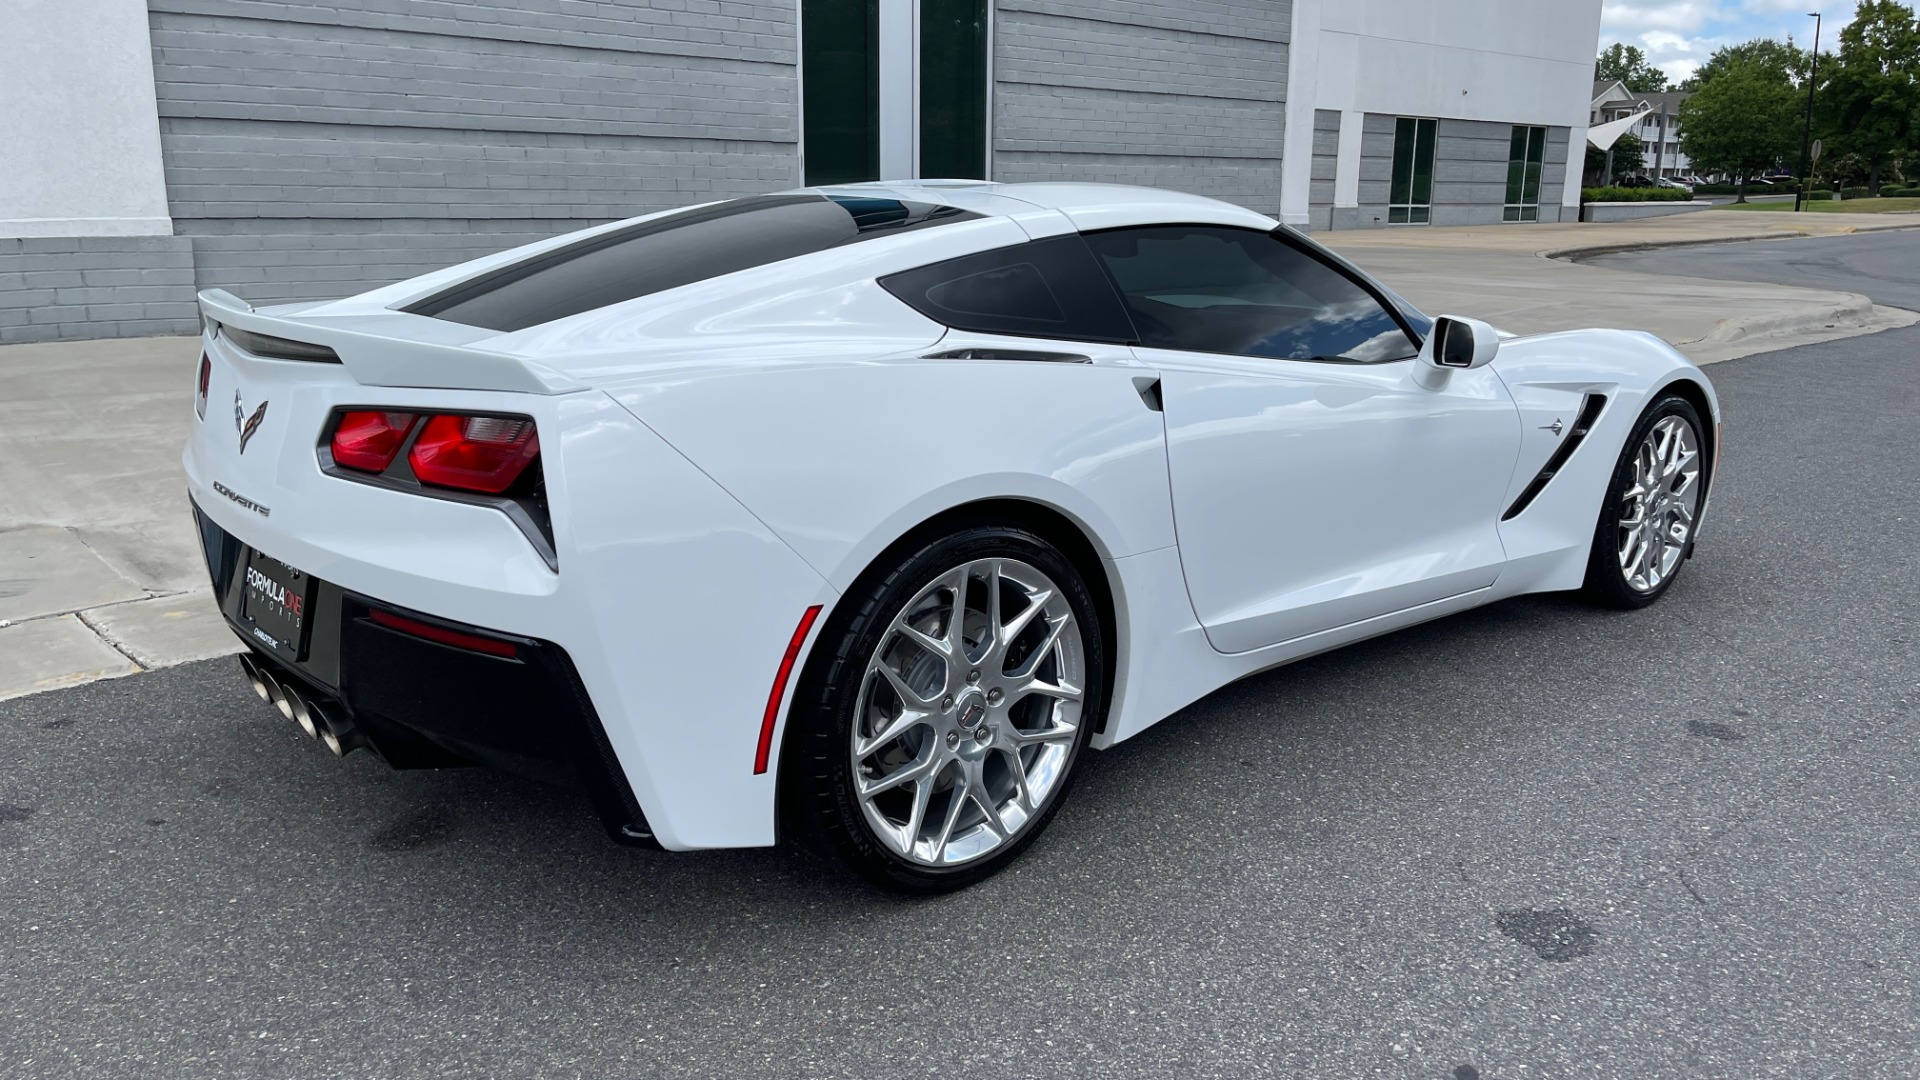 Used 2016 Chevrolet CORVETTE C7 STINGRAY COUPE Z51 3LT / NAV / PERF TRACTION MGMT / REARVIEW for sale Sold at Formula Imports in Charlotte NC 28227 3